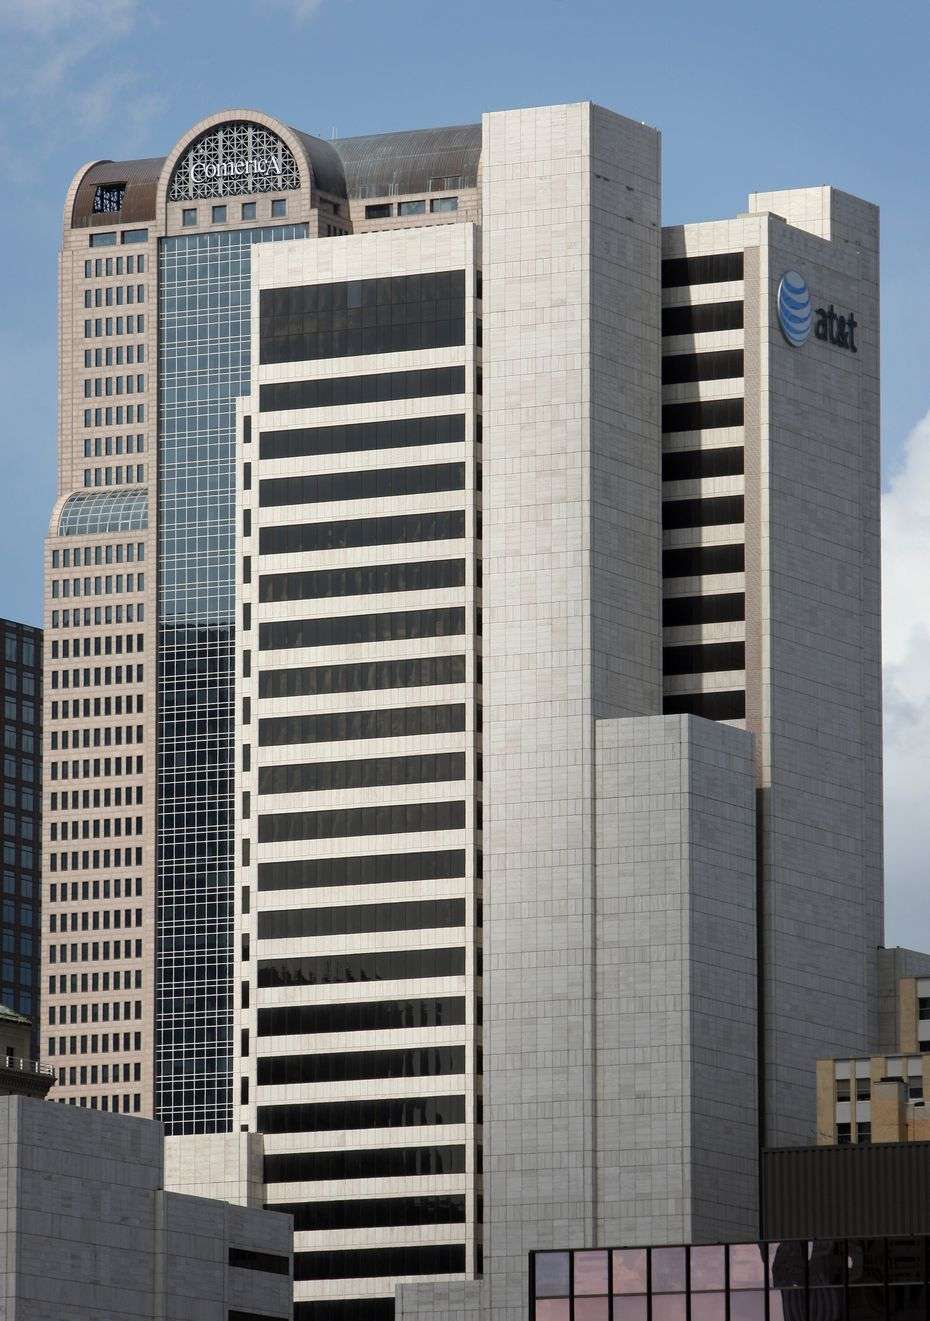 AT&T now occupies a handful of buildings on South Akard Street in downtown Dallas.